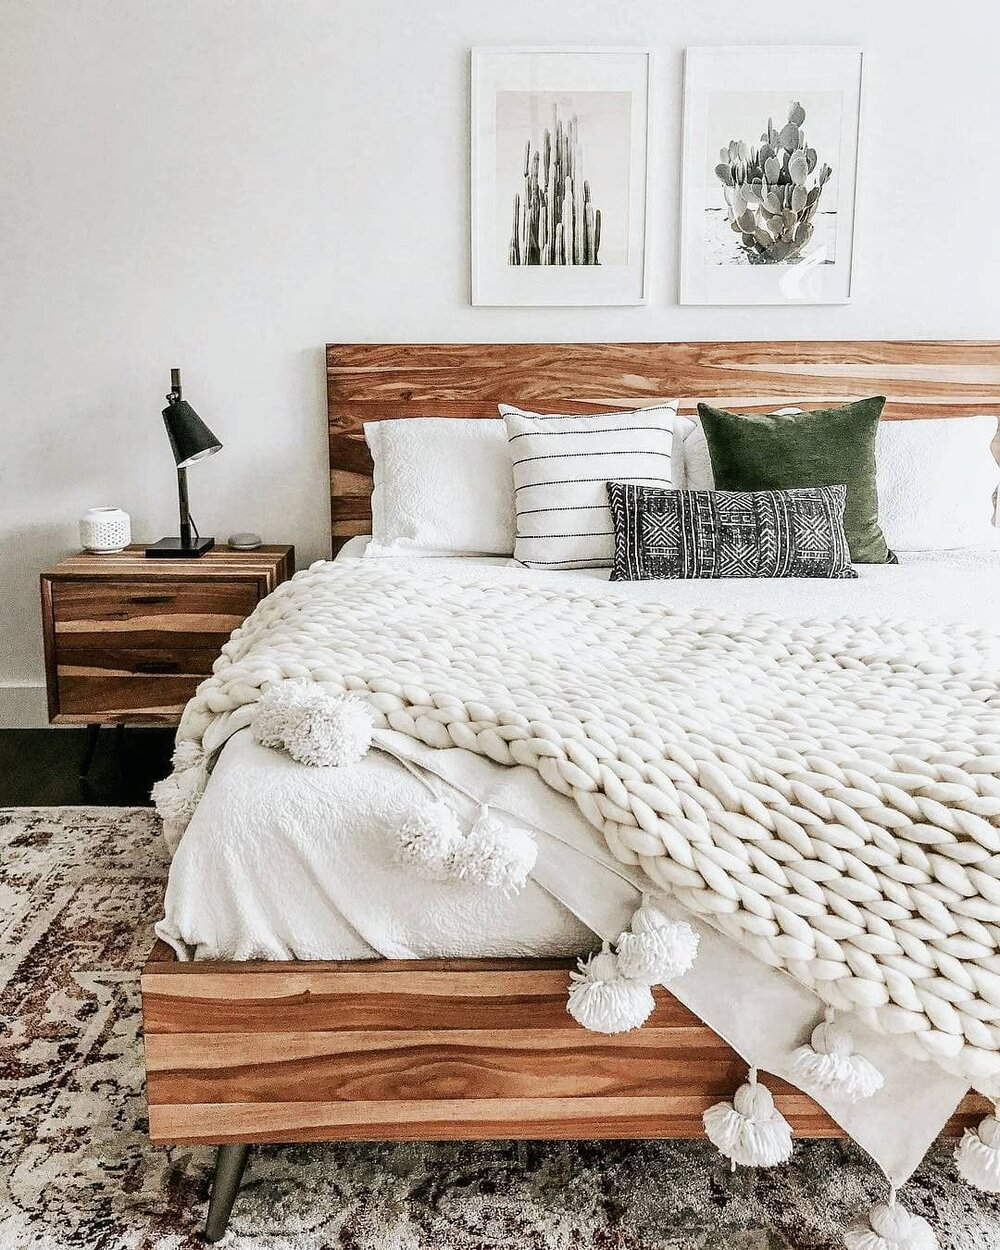 Get Ready for Cold Weather with New Cozy Bedding Courtesy of West Elm's One Big Fall Sale